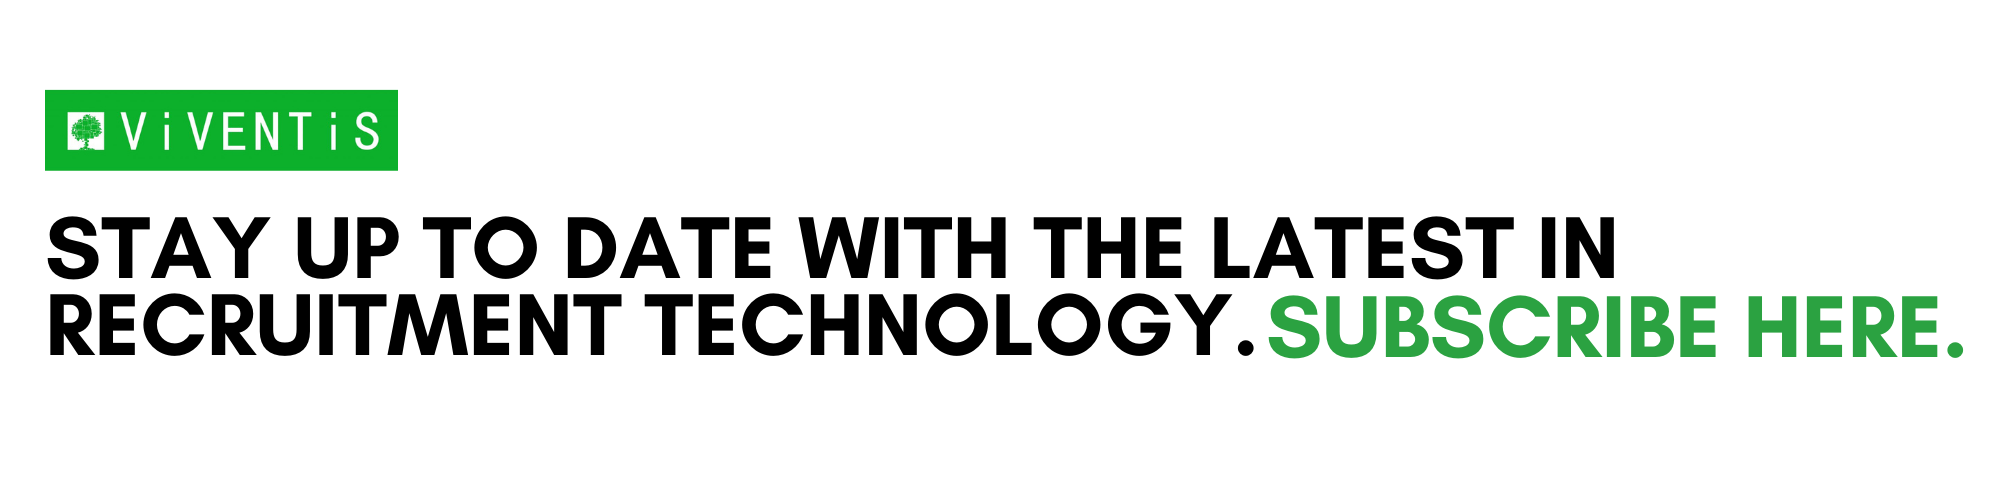 Stay up to date with the latest in recruitment technology. Subscribe here.